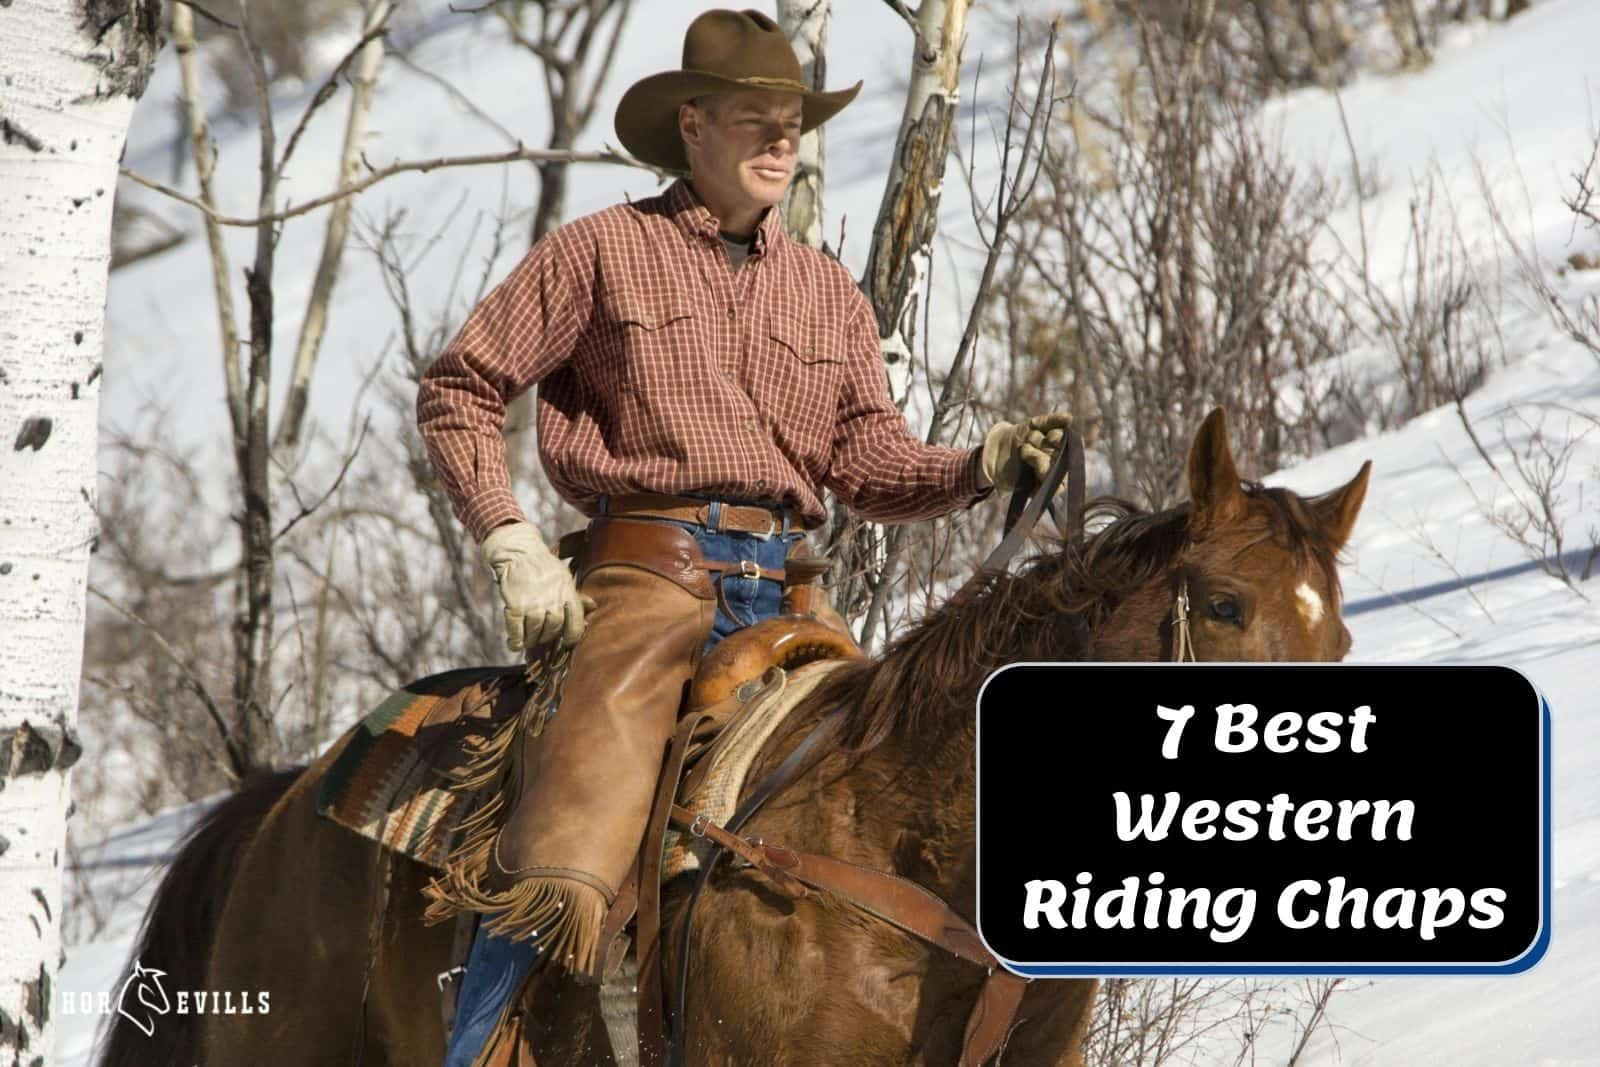 Rider wearing complete western riding gear including the best Western riding chaps